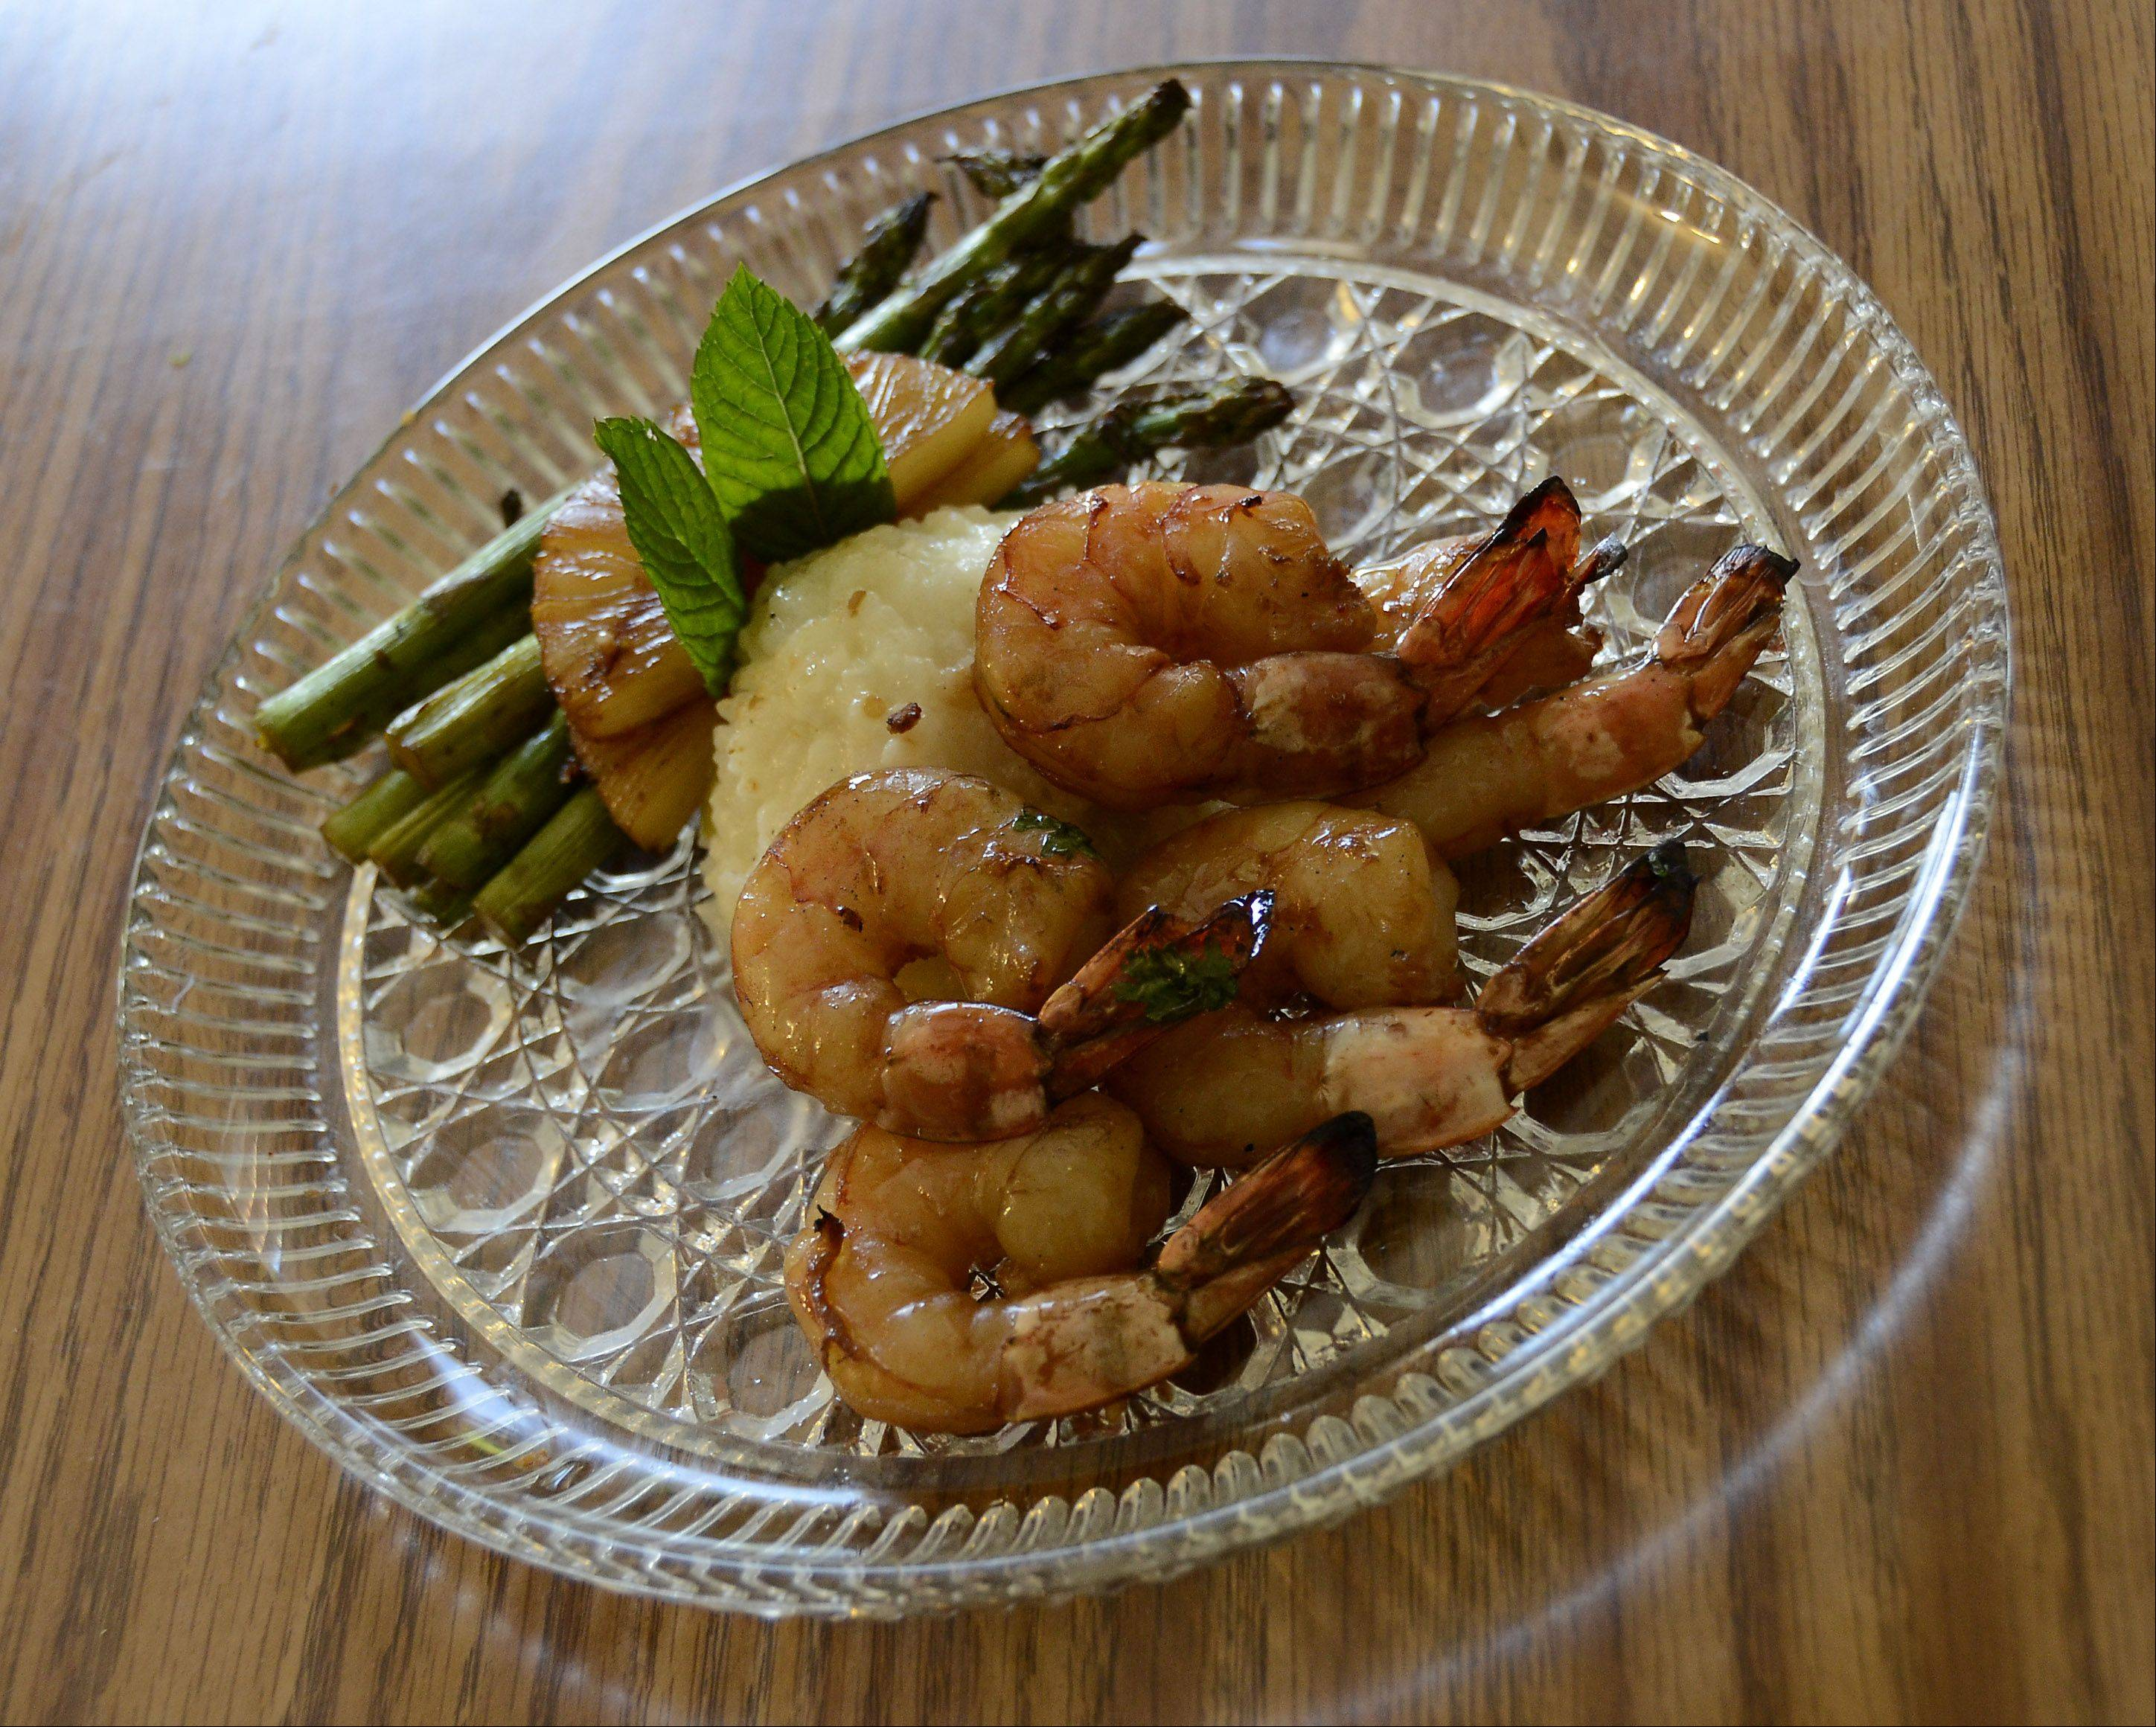 Steven Buchholz serves Grilled Teriyaki Shrimp with asparagus and rice pilaf.